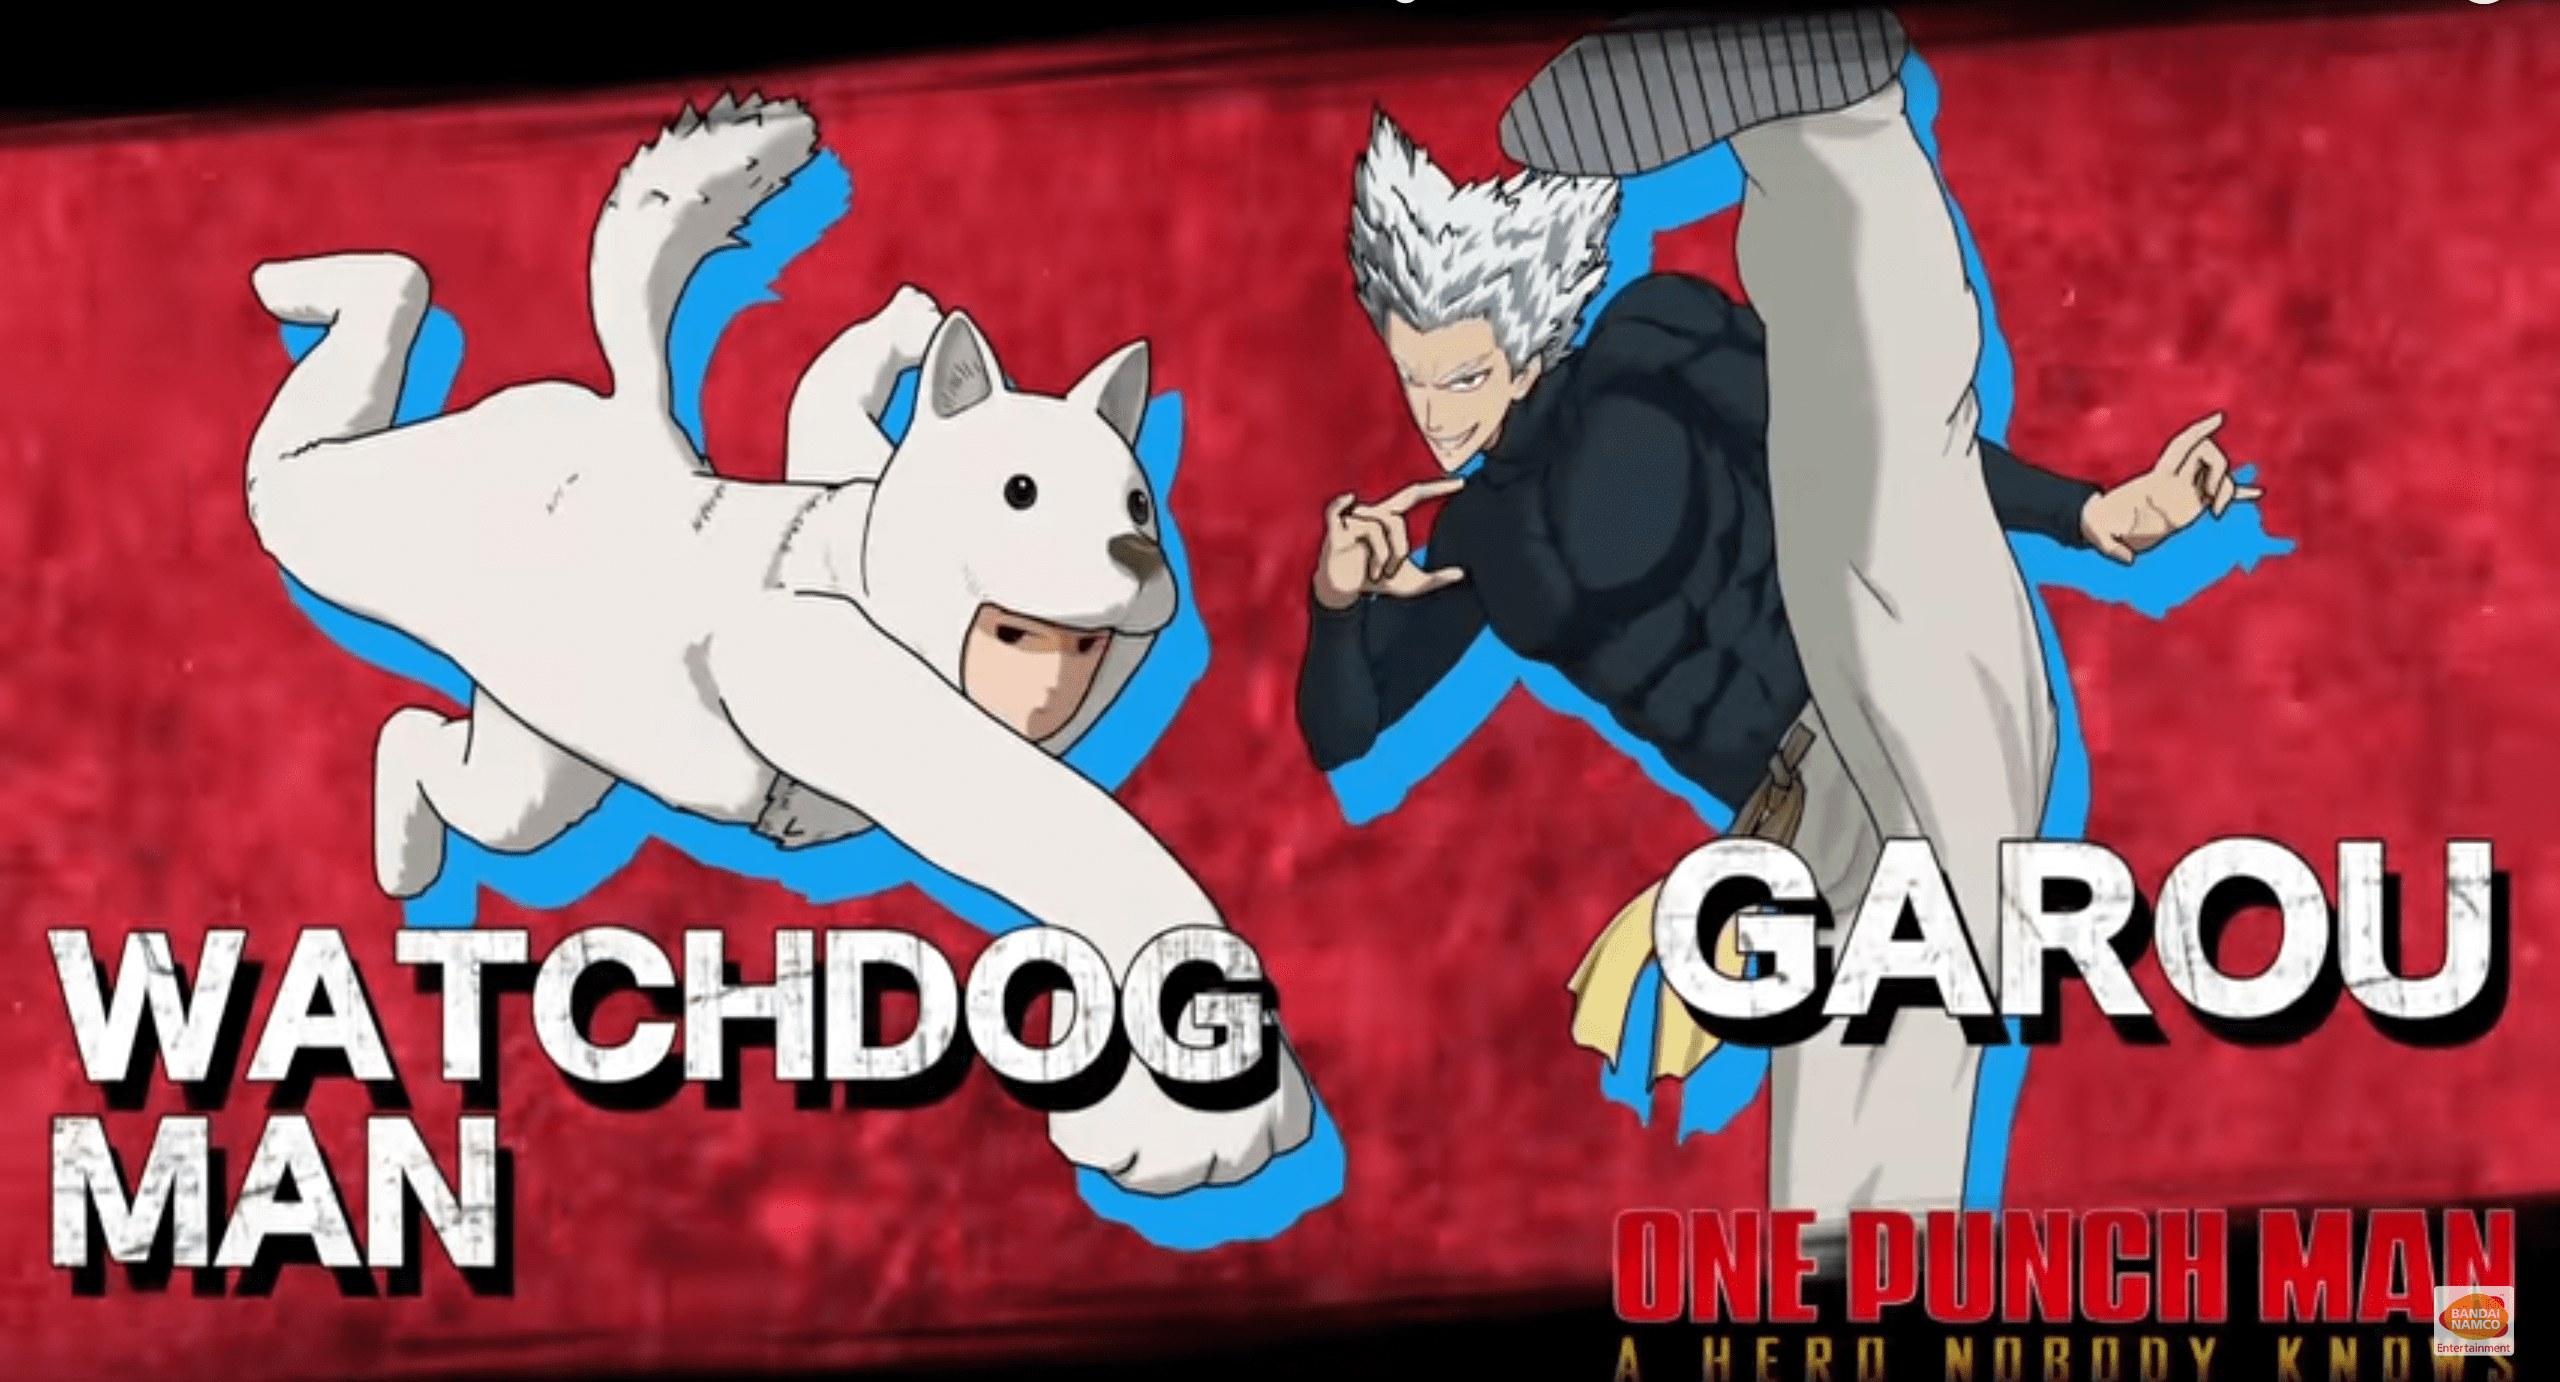 OPM A Hero Nobody Knows Garoh Watchdog Man